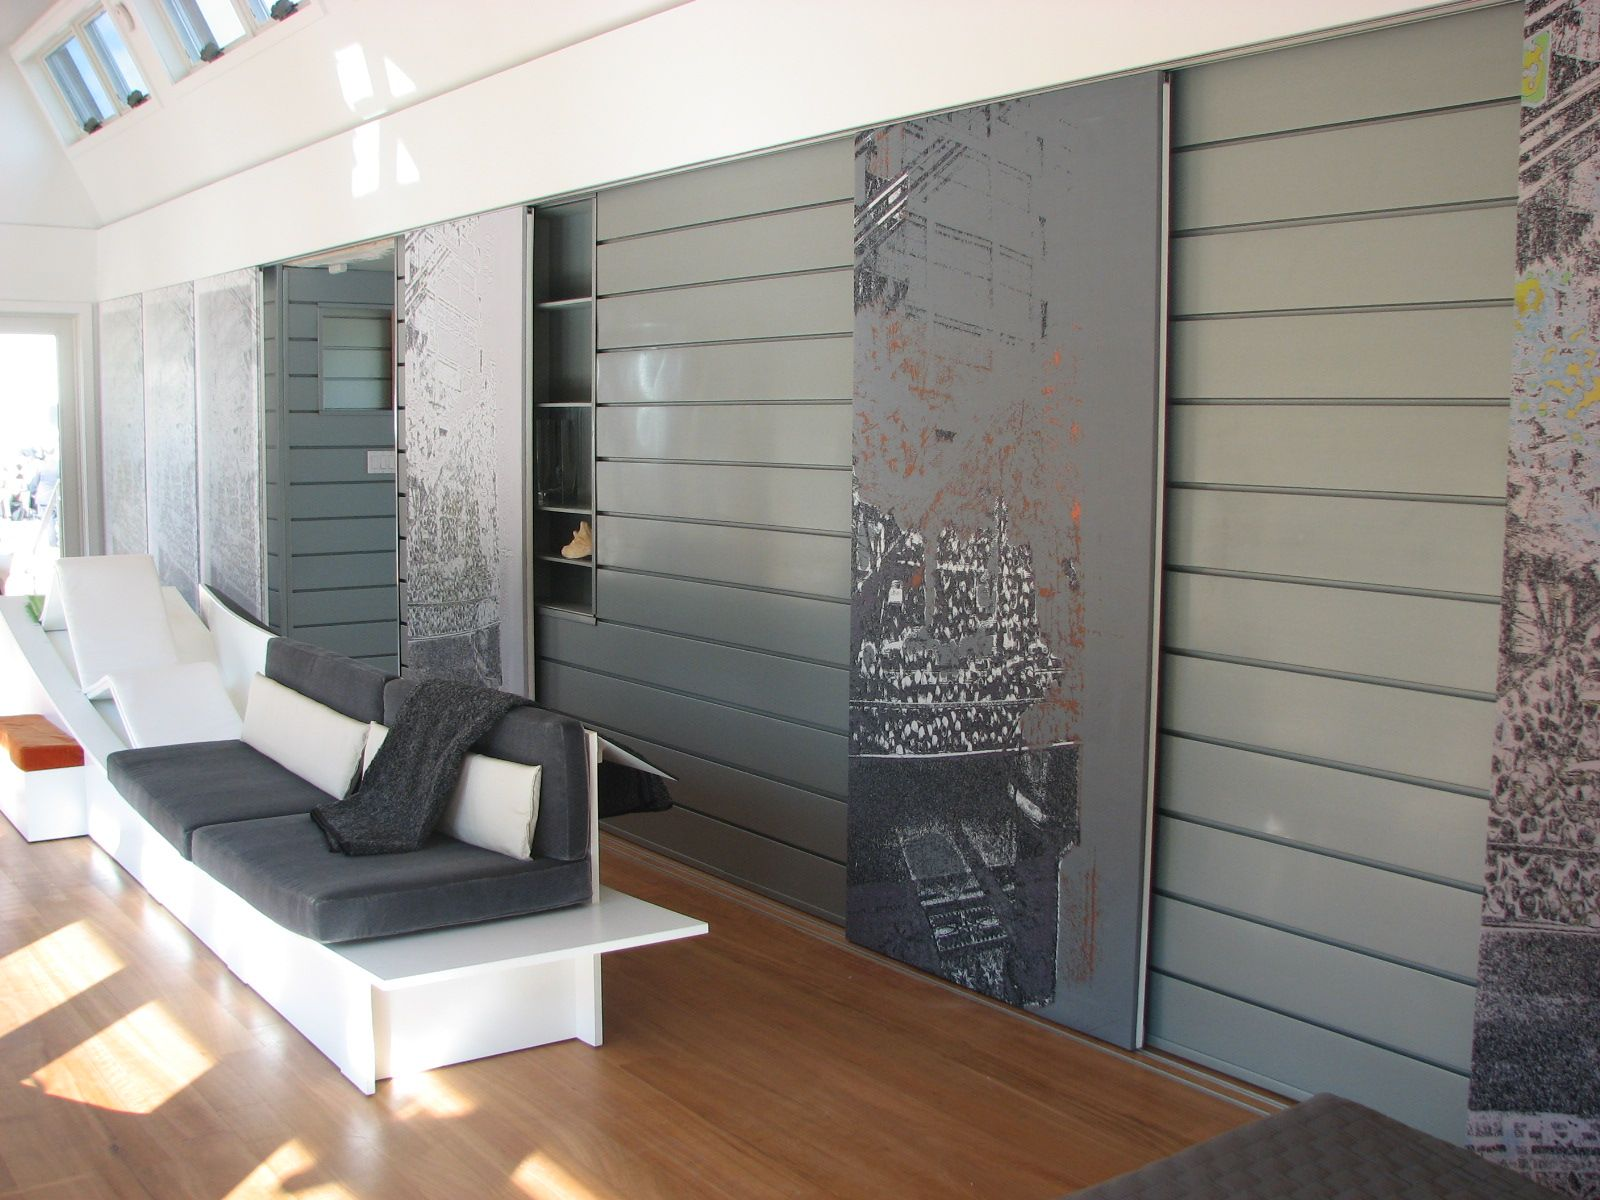 Interior wall reveal panels preweathered zinc zinc facade system